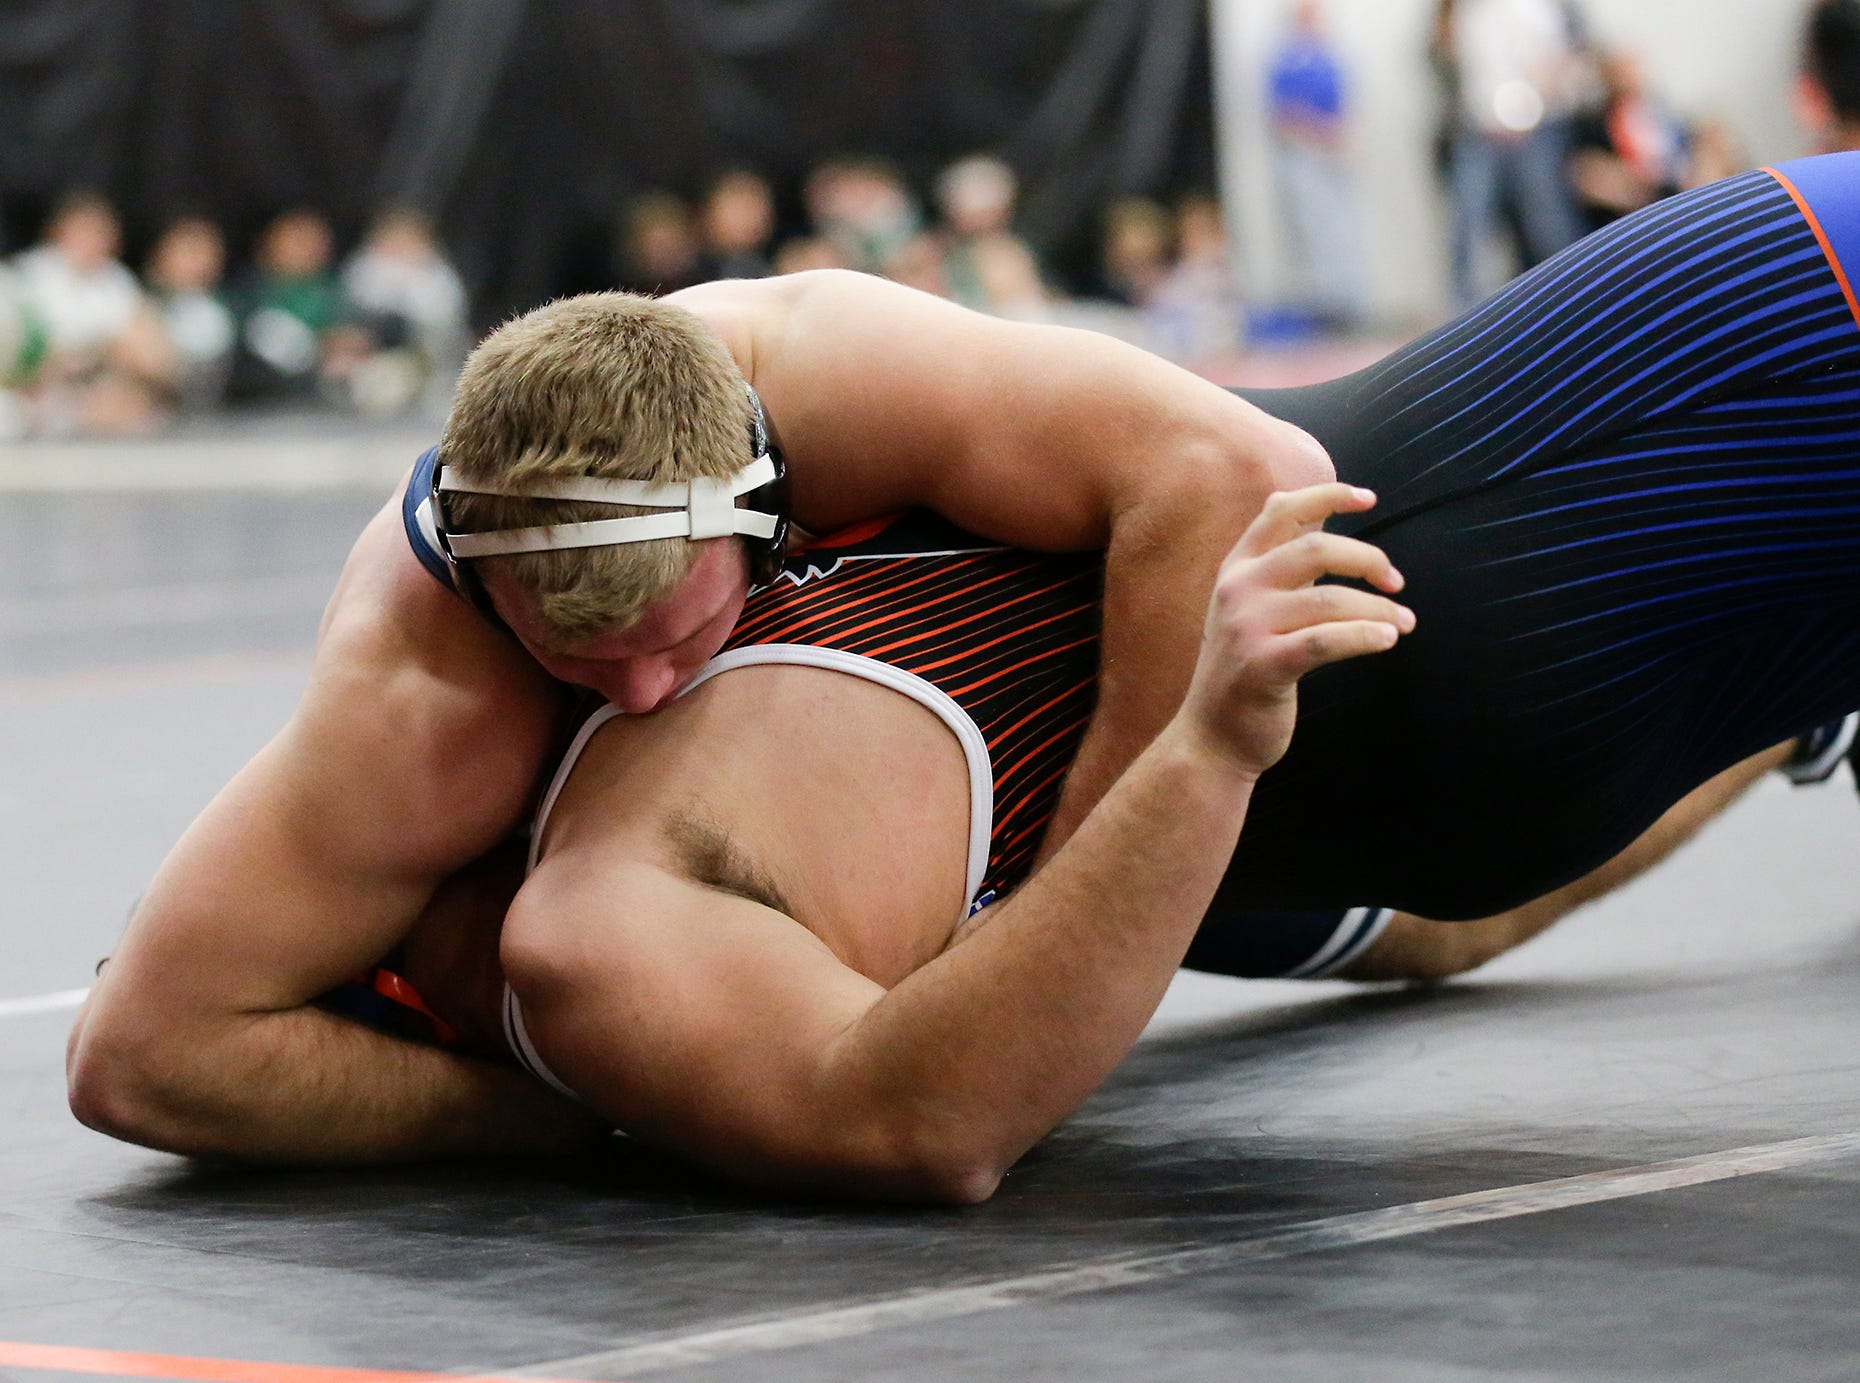 Springs/North Fond du Lac High School wrestling's Avery Hull wrestles Max Meeuwsen of  Bay port High School Saturday, December 15, 2018 in the 285 pound weight class during the Fond du Lac Cardinal wrestling invitational in Fond du Lac, Wisconsin. Meeuwsen won the match with a pin. Doug Raflik/USA TODAY NETWORK-Wisconsin